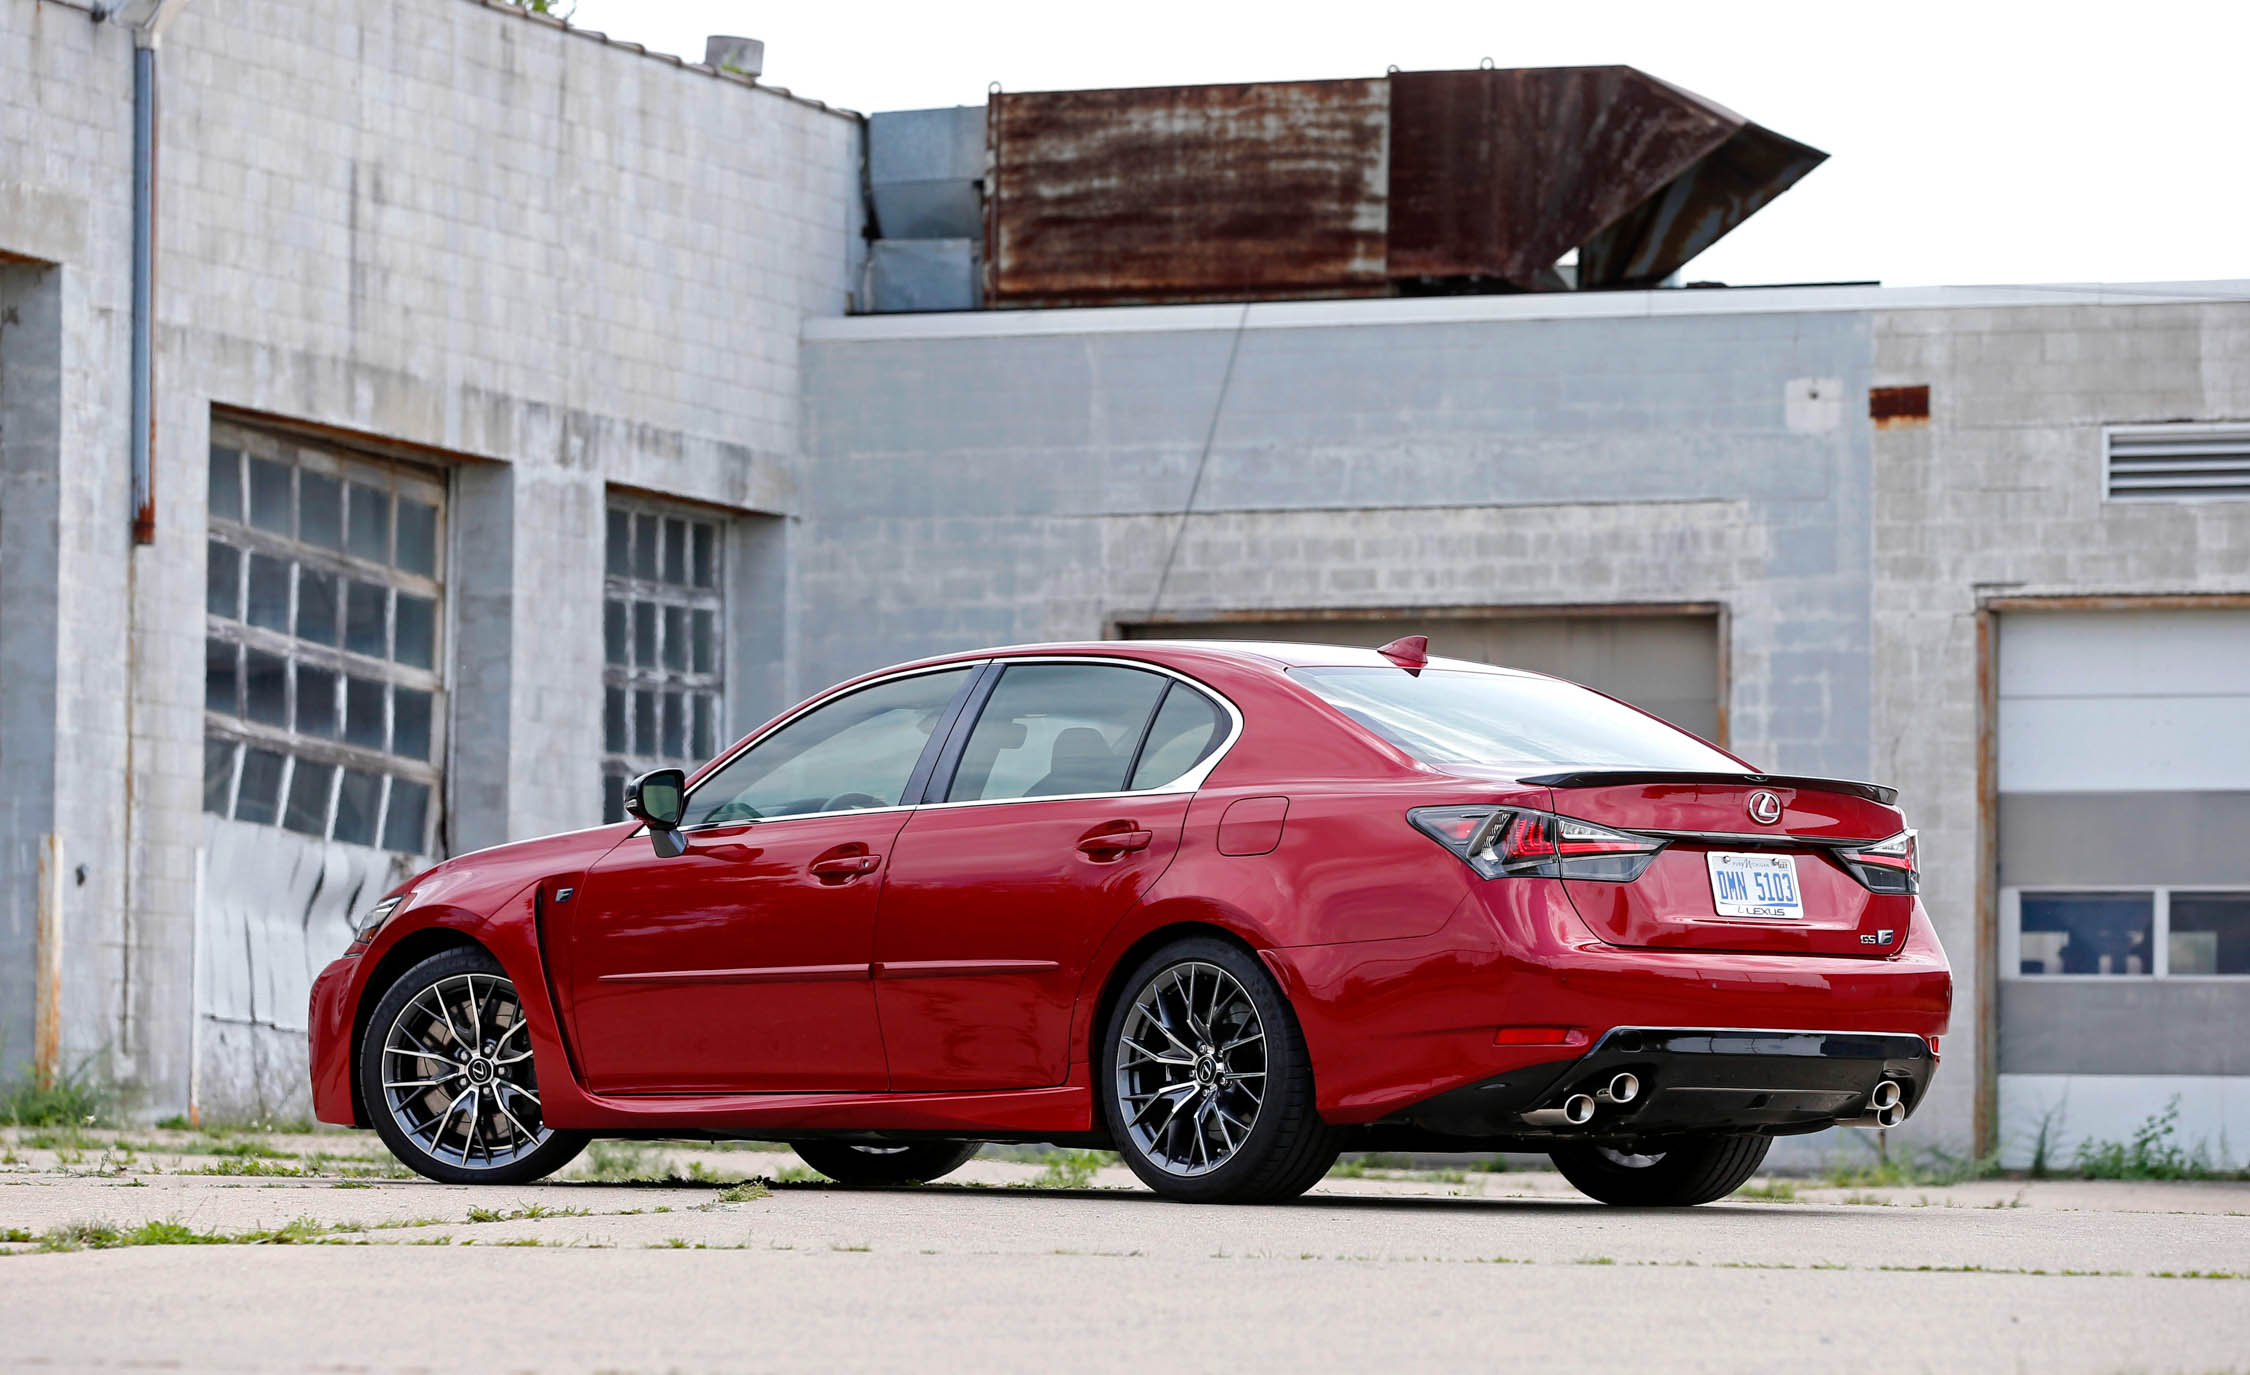 2016 Lexus Gs F Exterior Side And Rear (Photo 20 of 20)